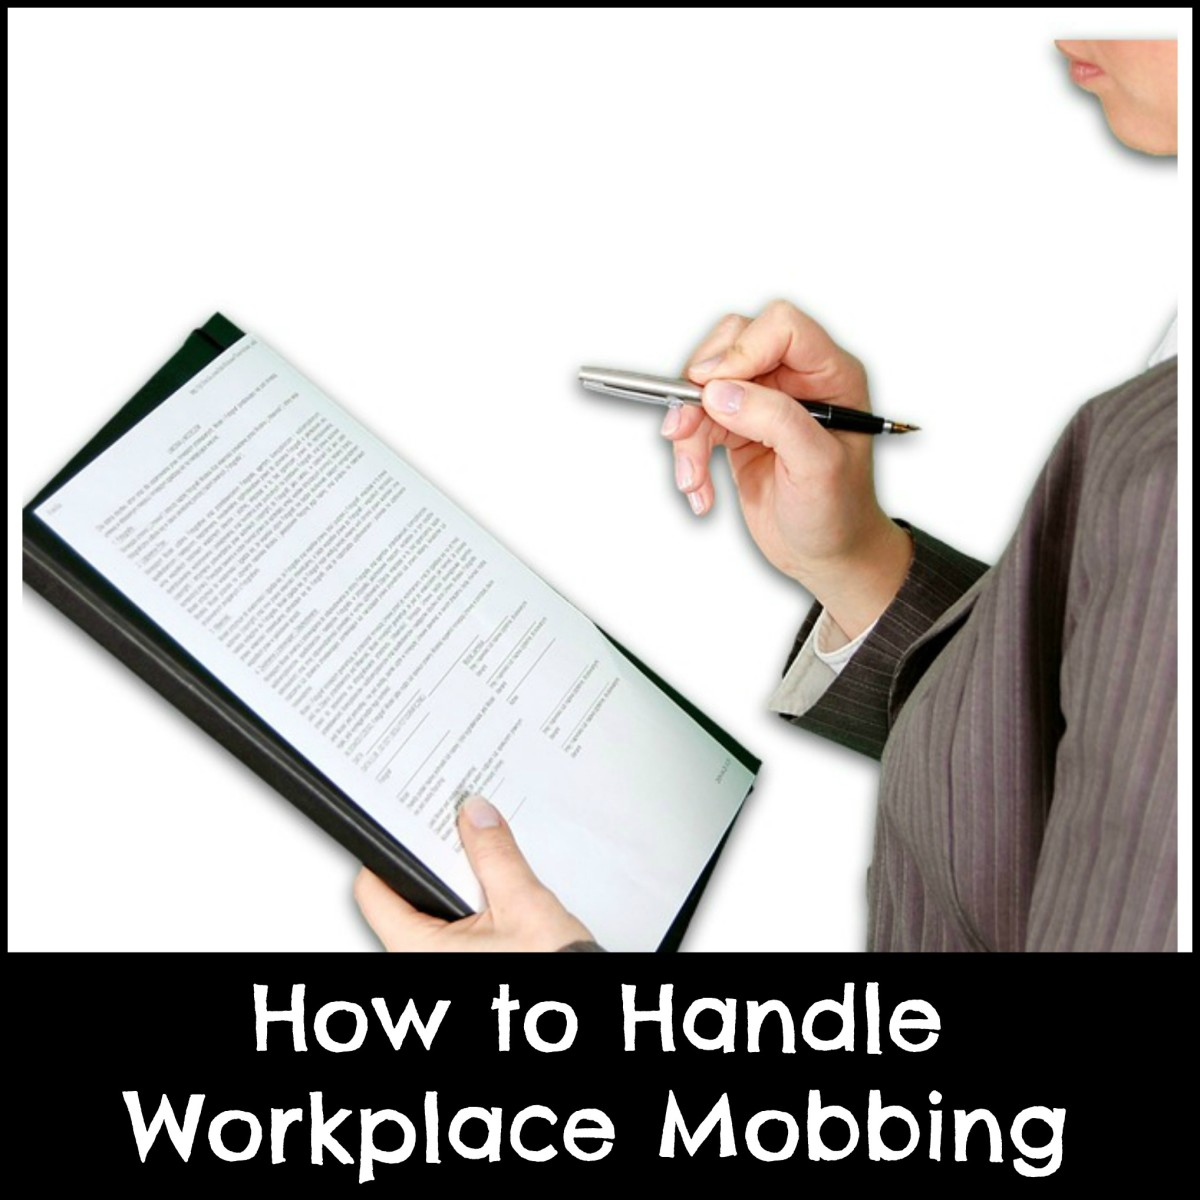 What to do if you are mobbed at work.